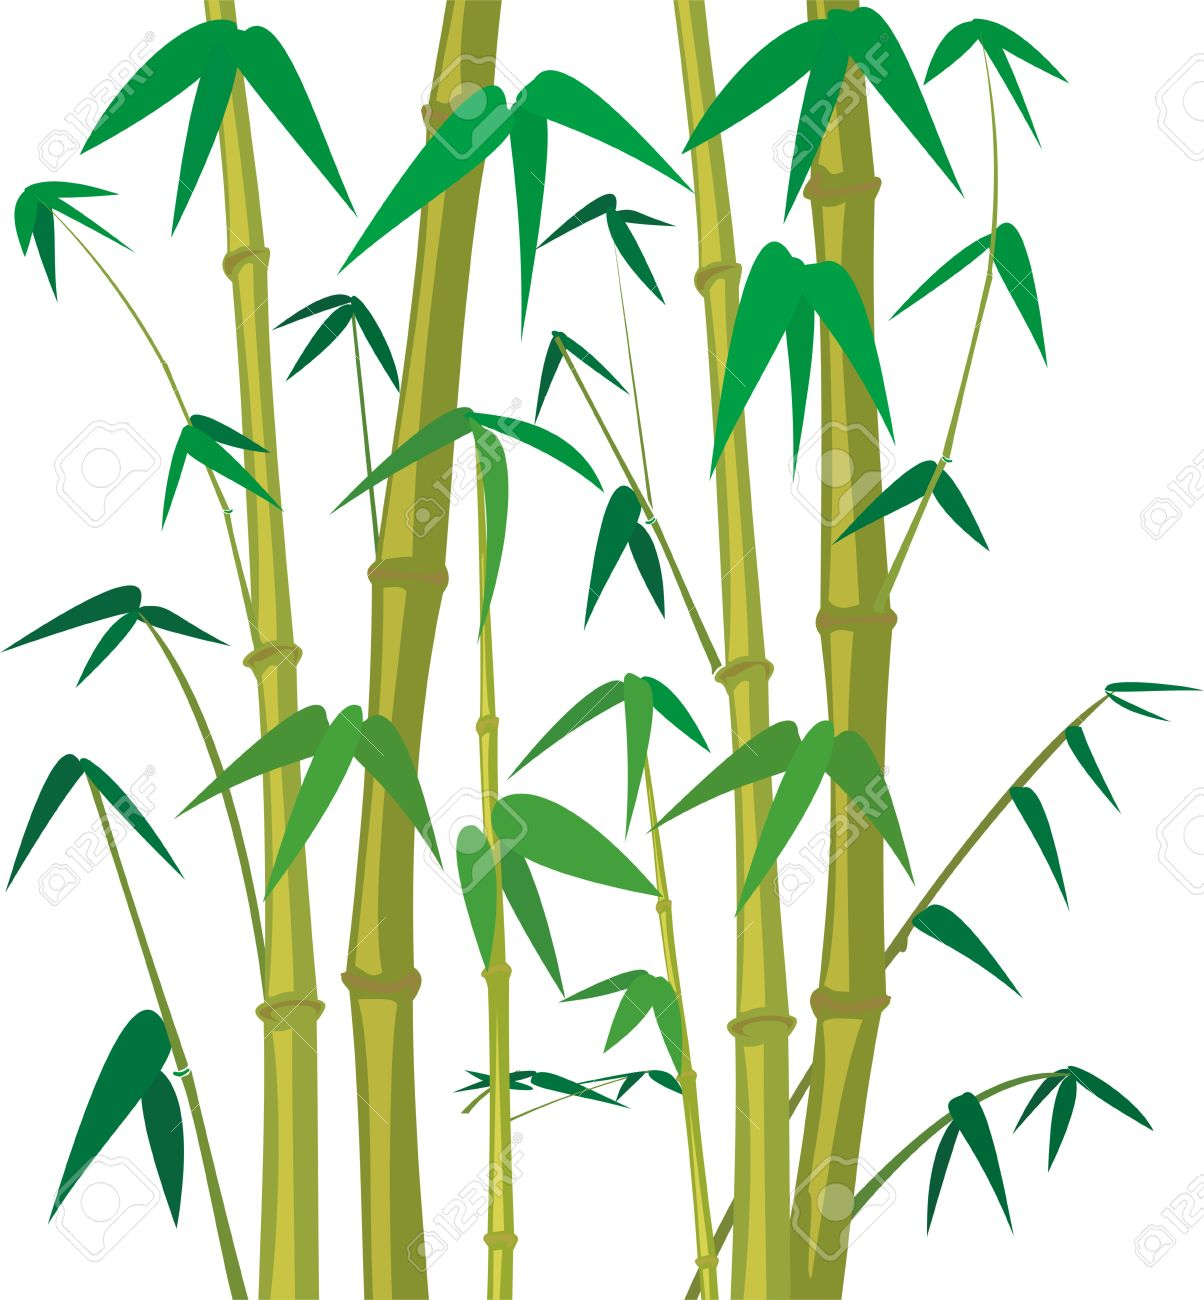 1,739 Bamboo Grass Stock Vector Illustration And Royalty Free.